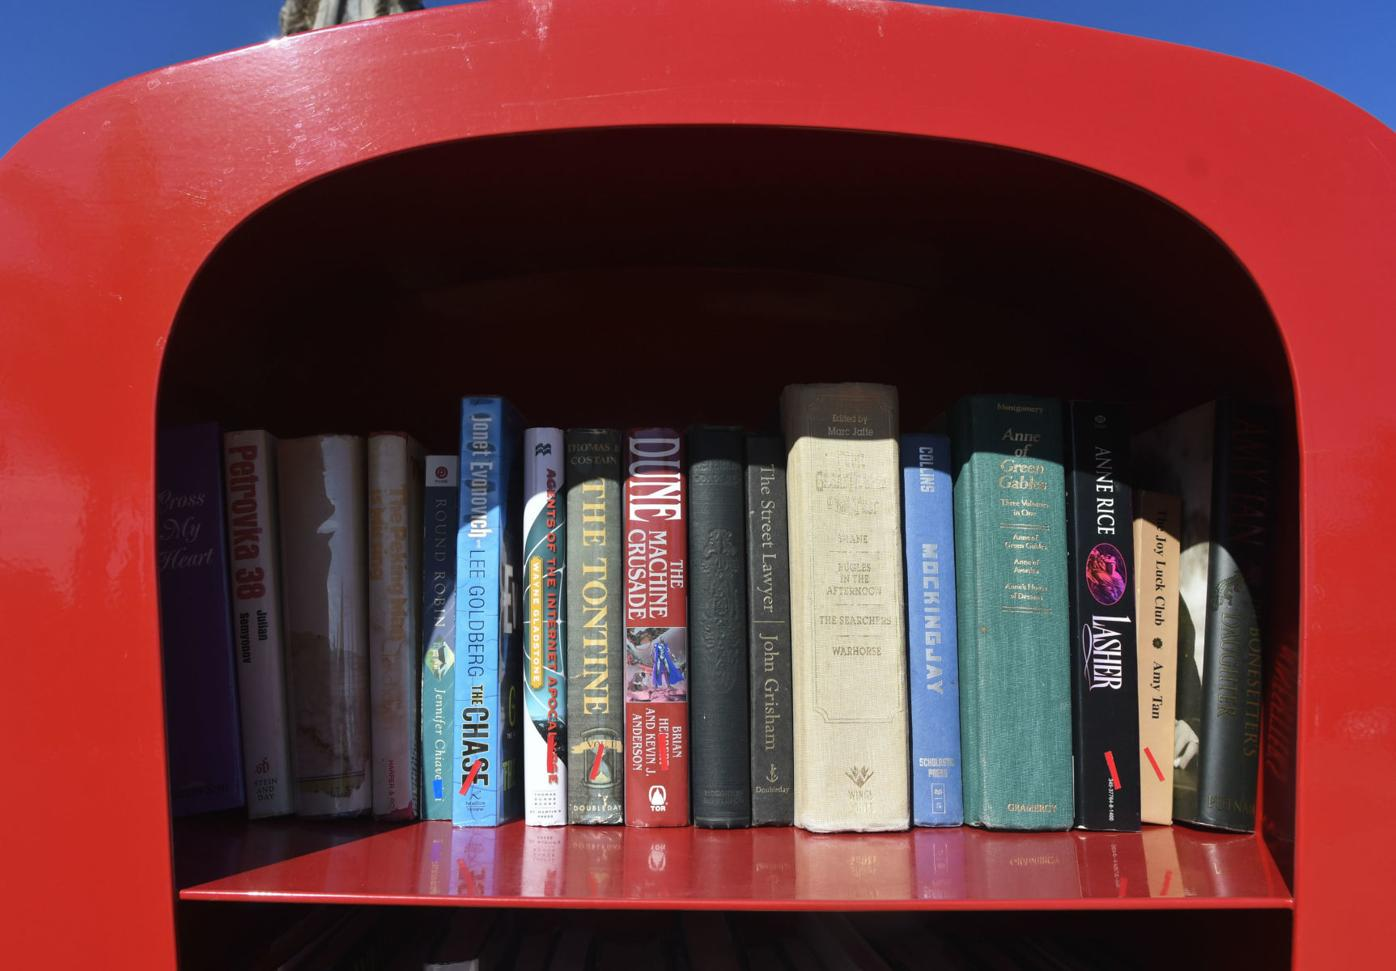 011420 Tiny Libraries exclamation mark 02.jpg